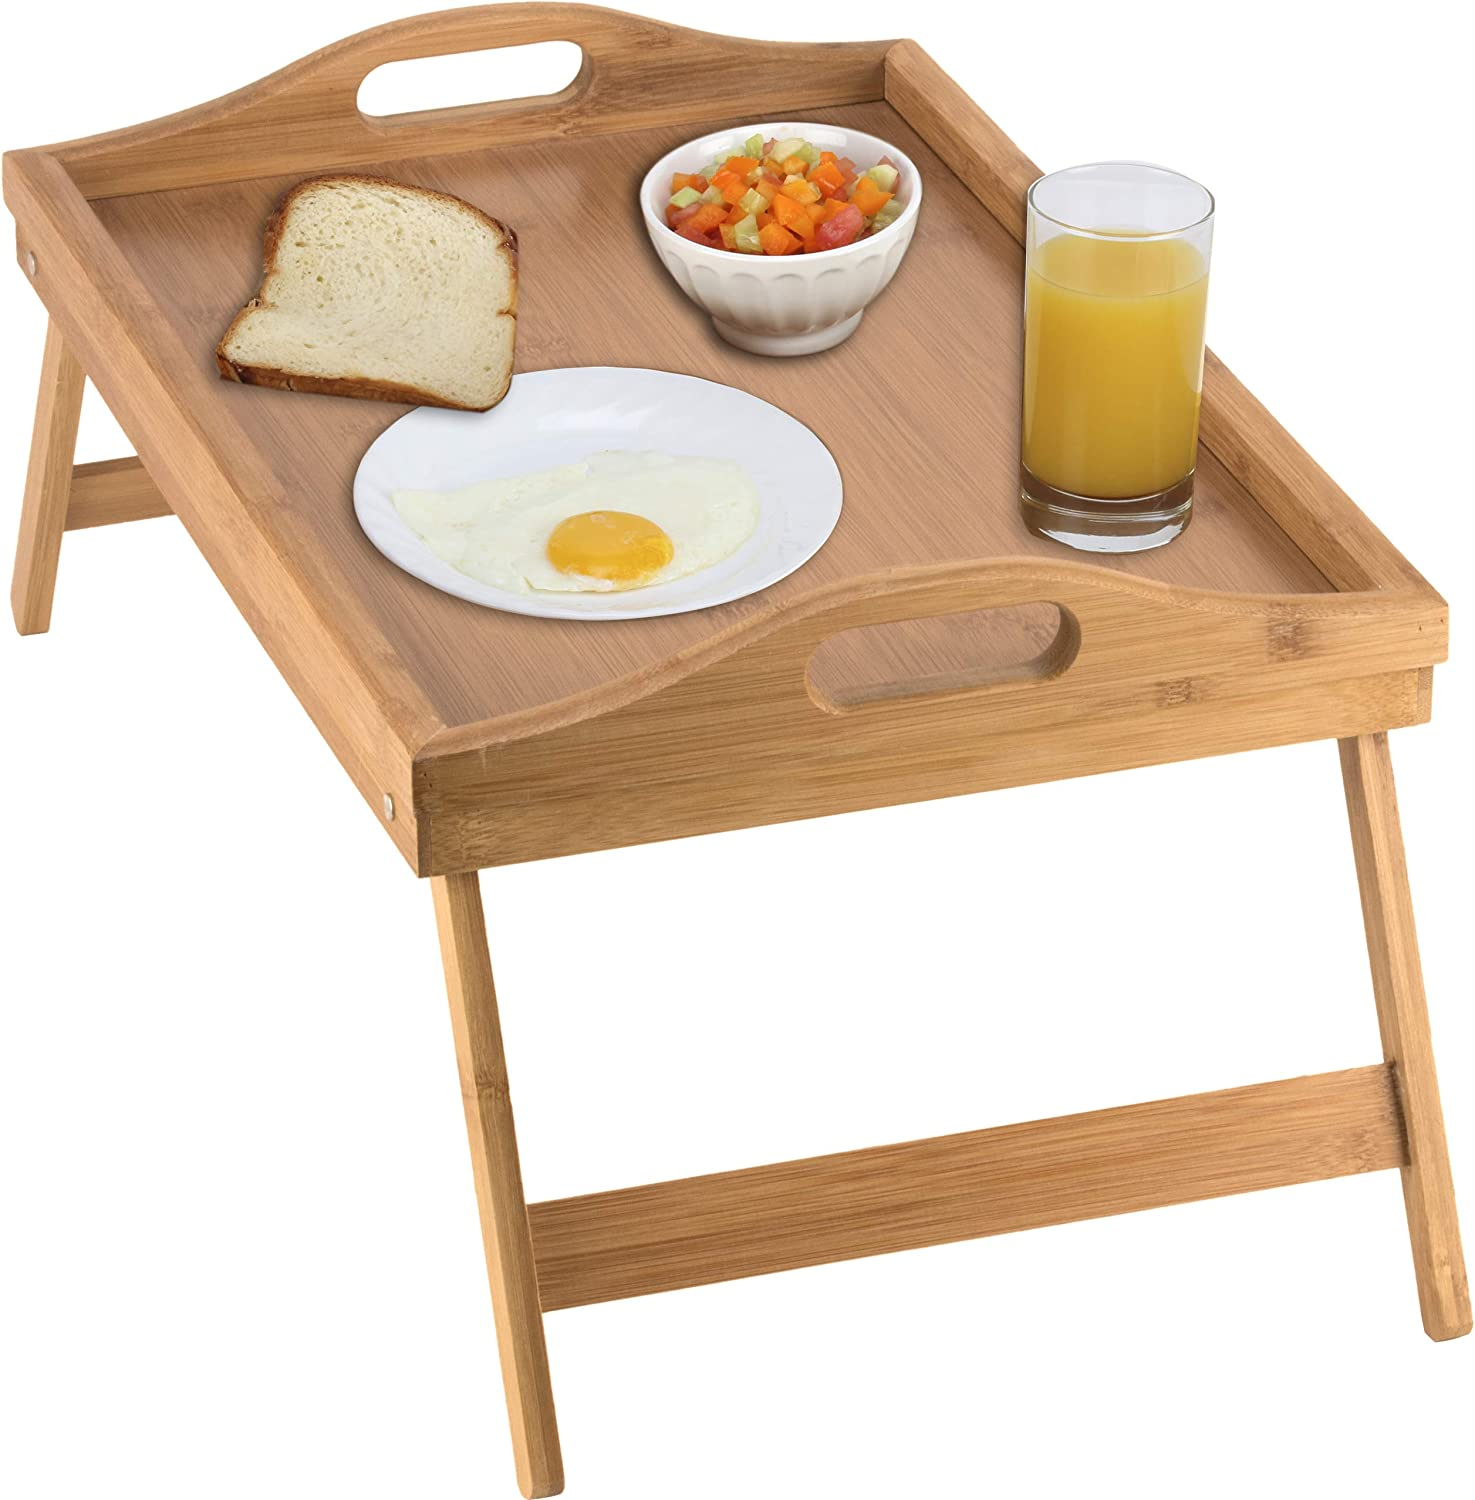 Amazon Com Home It Bed Tray Table With Folding Legs And Breakfast Tray Bamboo Bed Table And Bed Tray With Legs